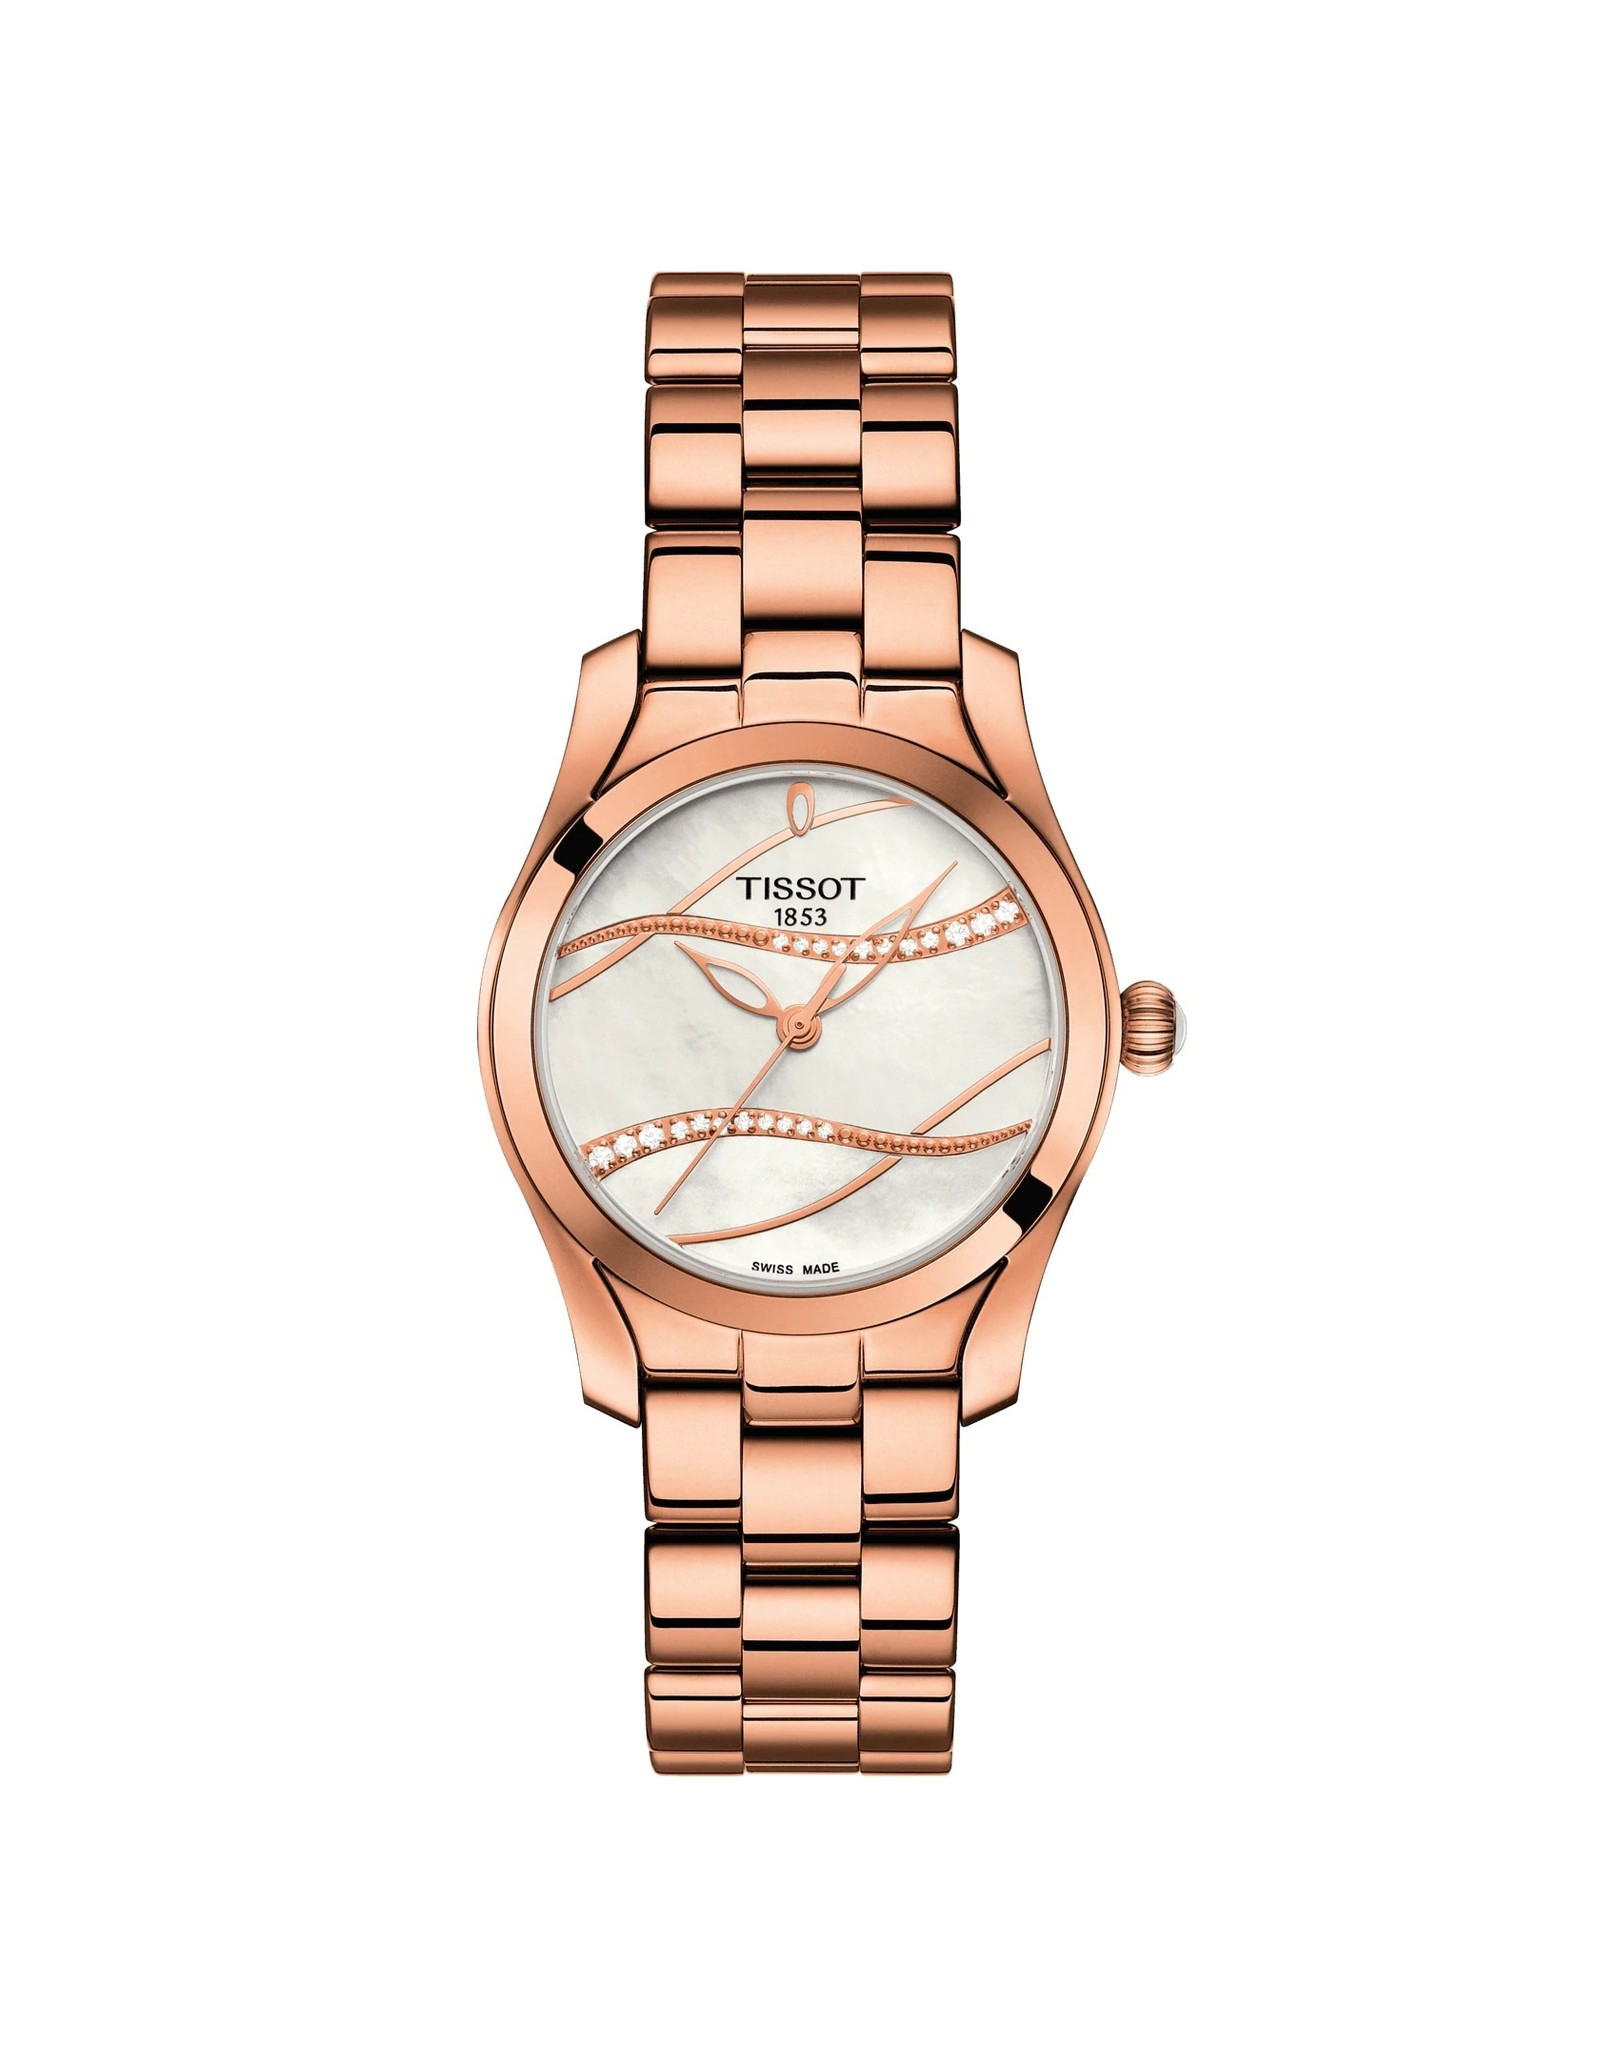 Tissot Tissot T-Wave II Ladies Watch